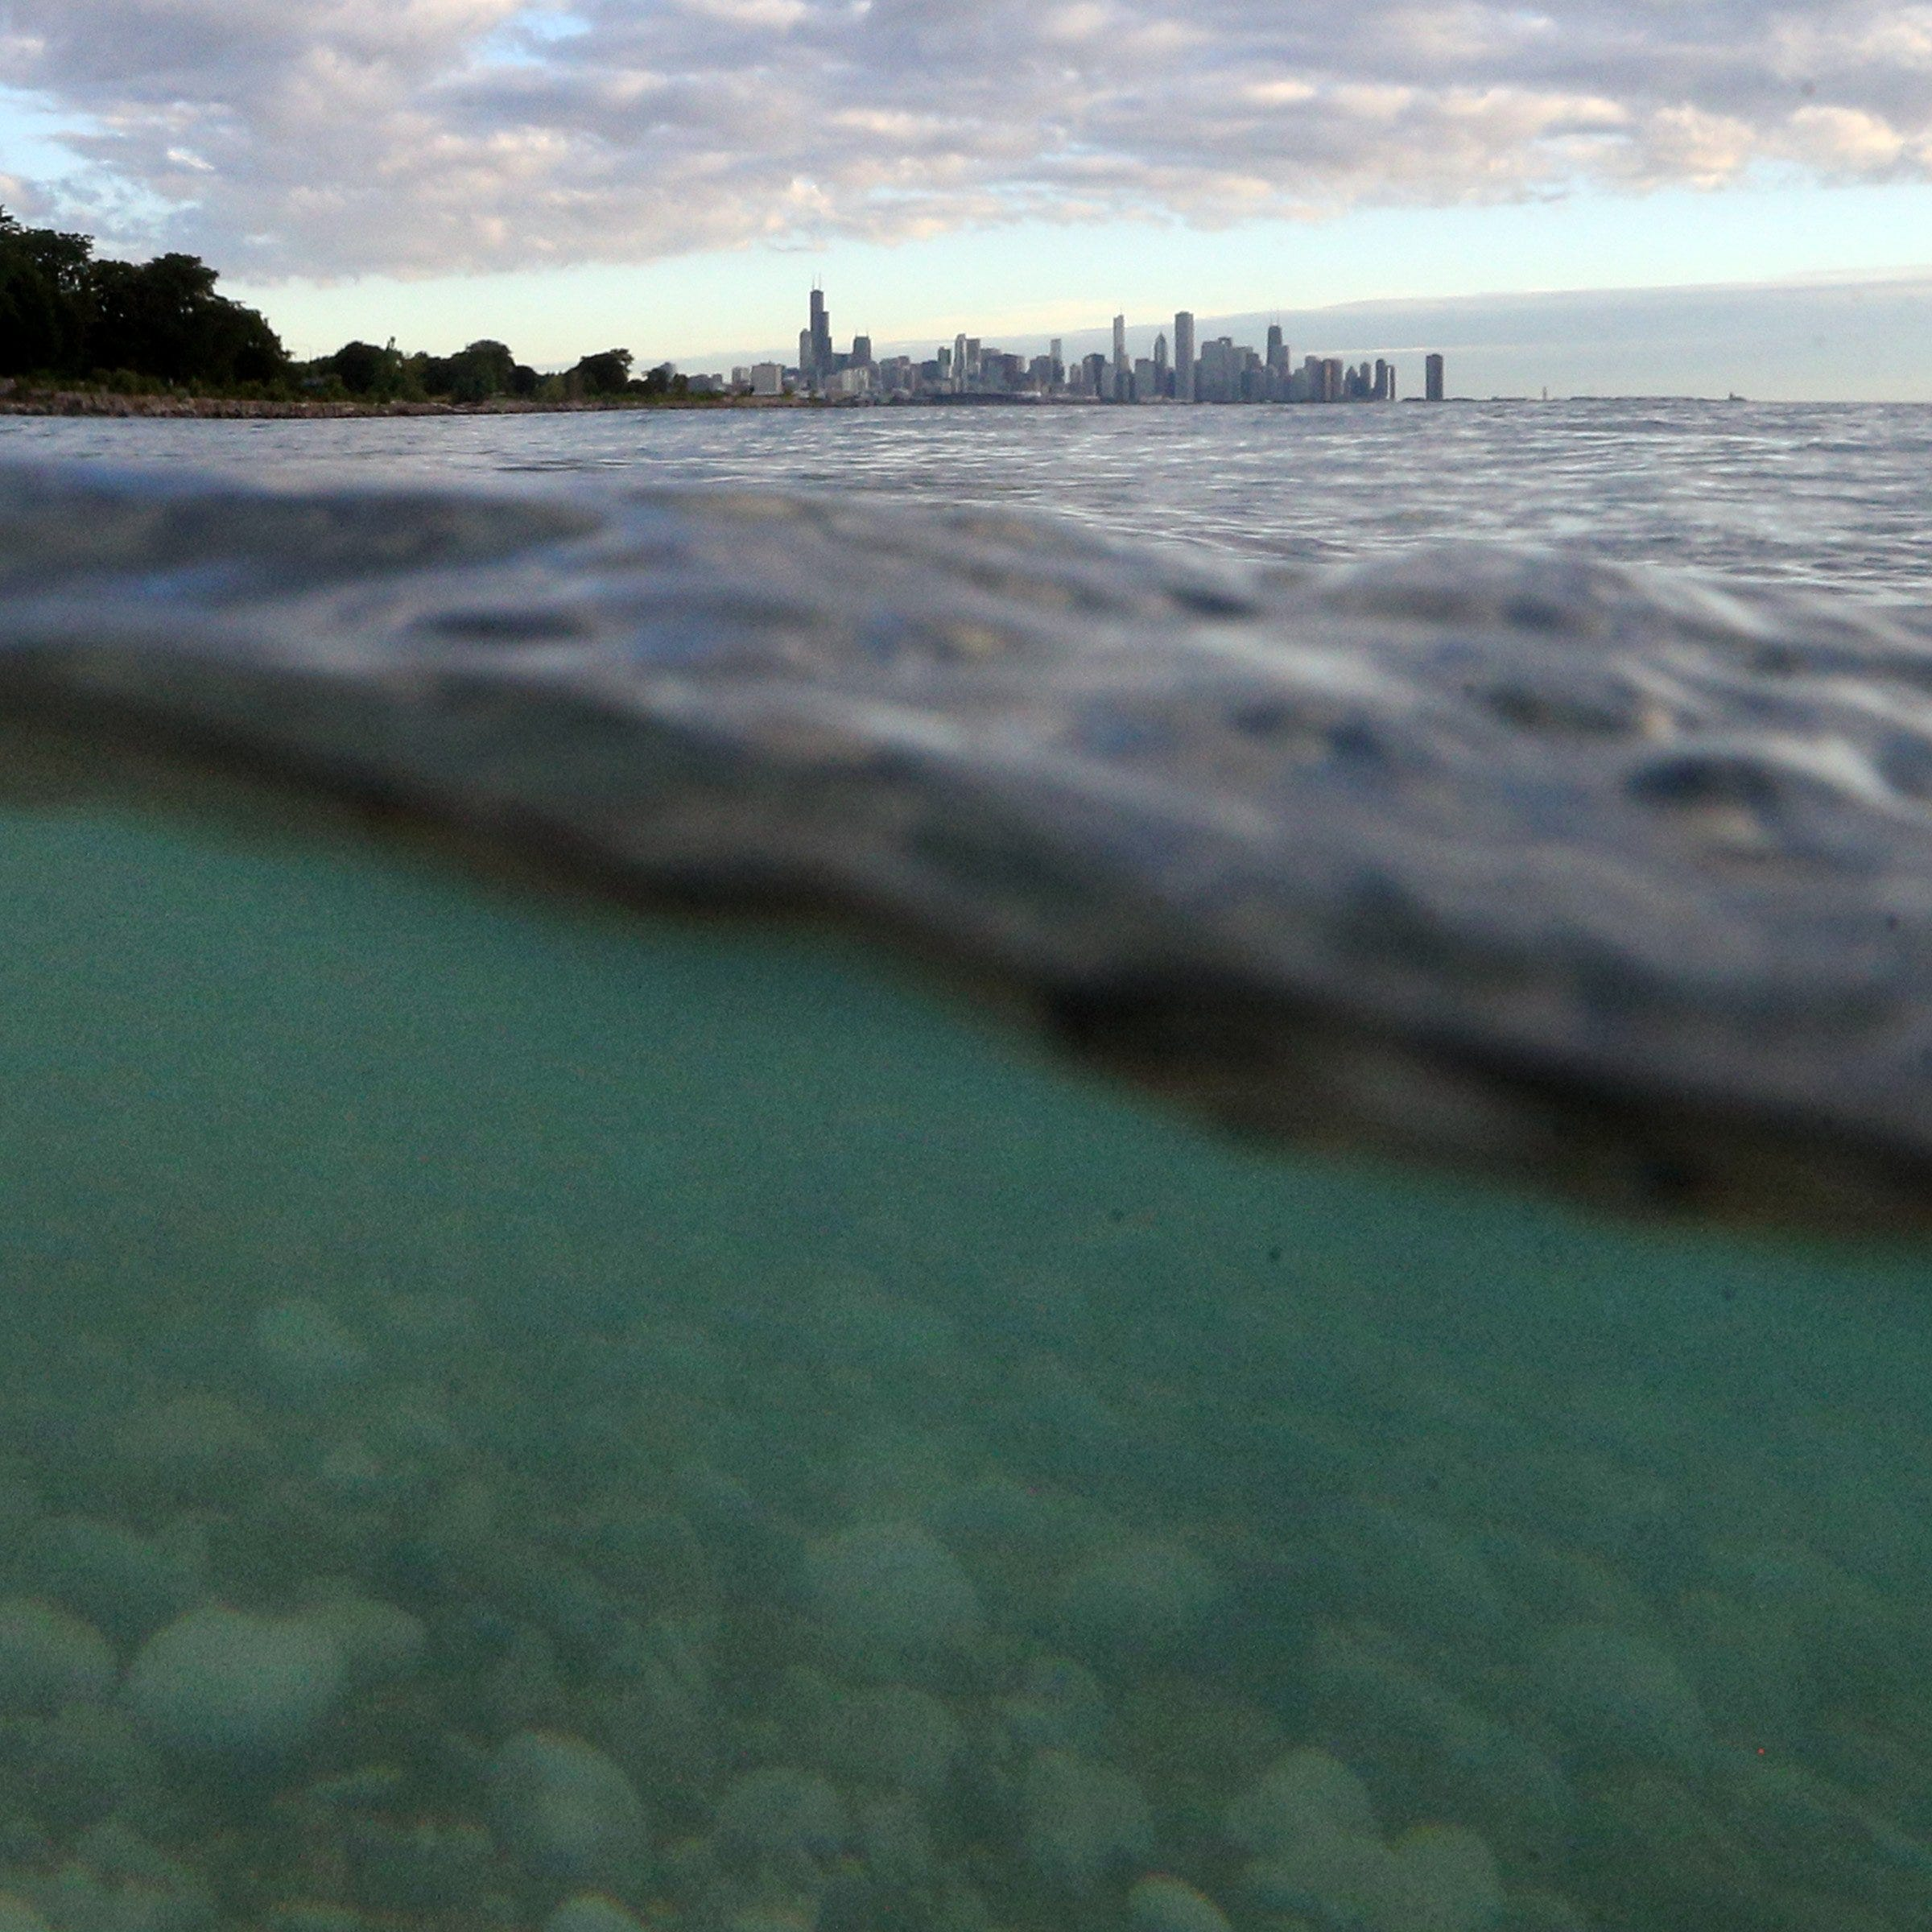 2 Chicago boys die after being pulled from Lake Michigan